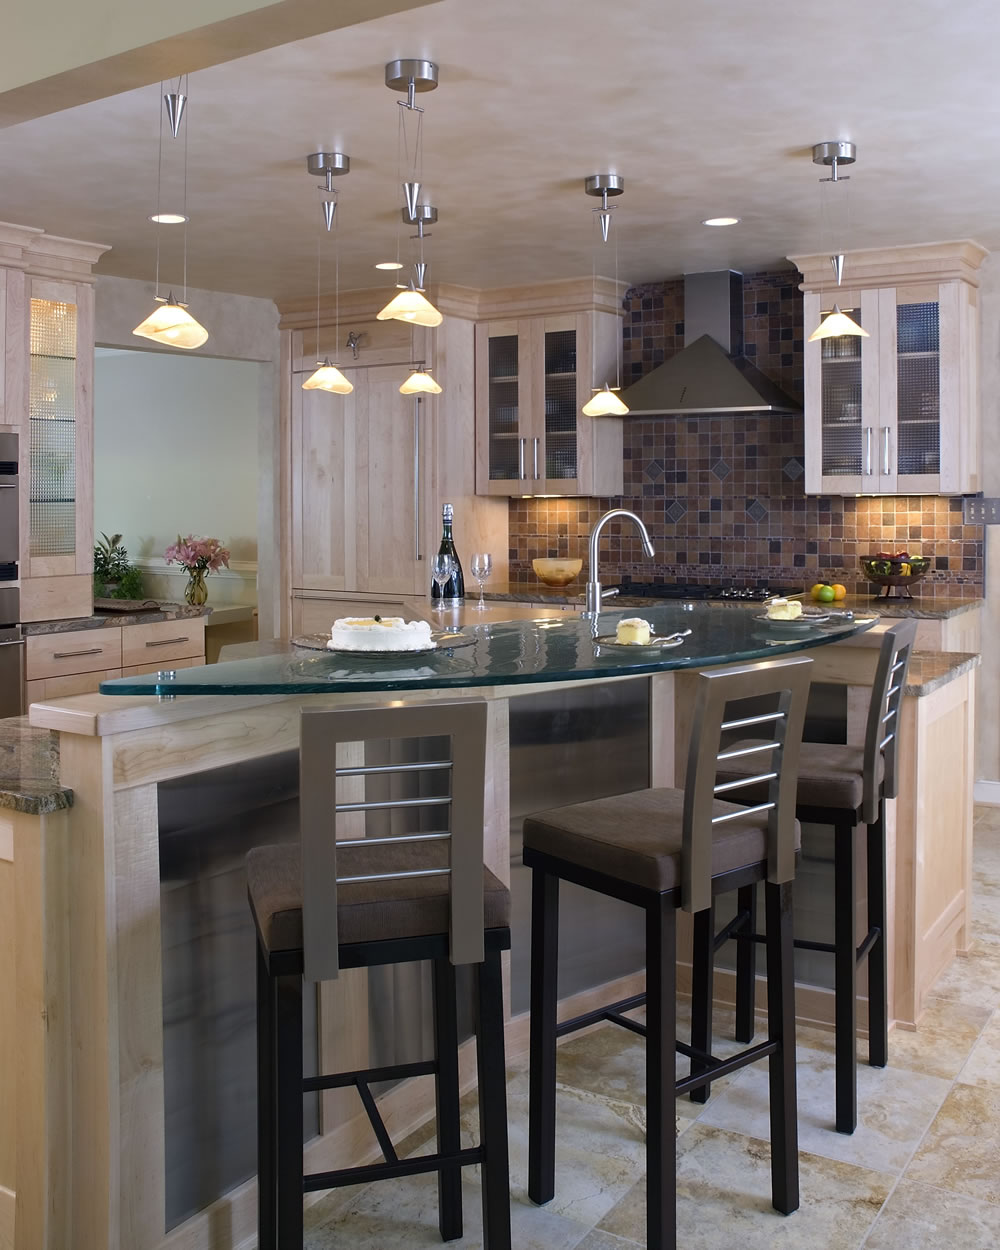 16 Tables & Counter Tops